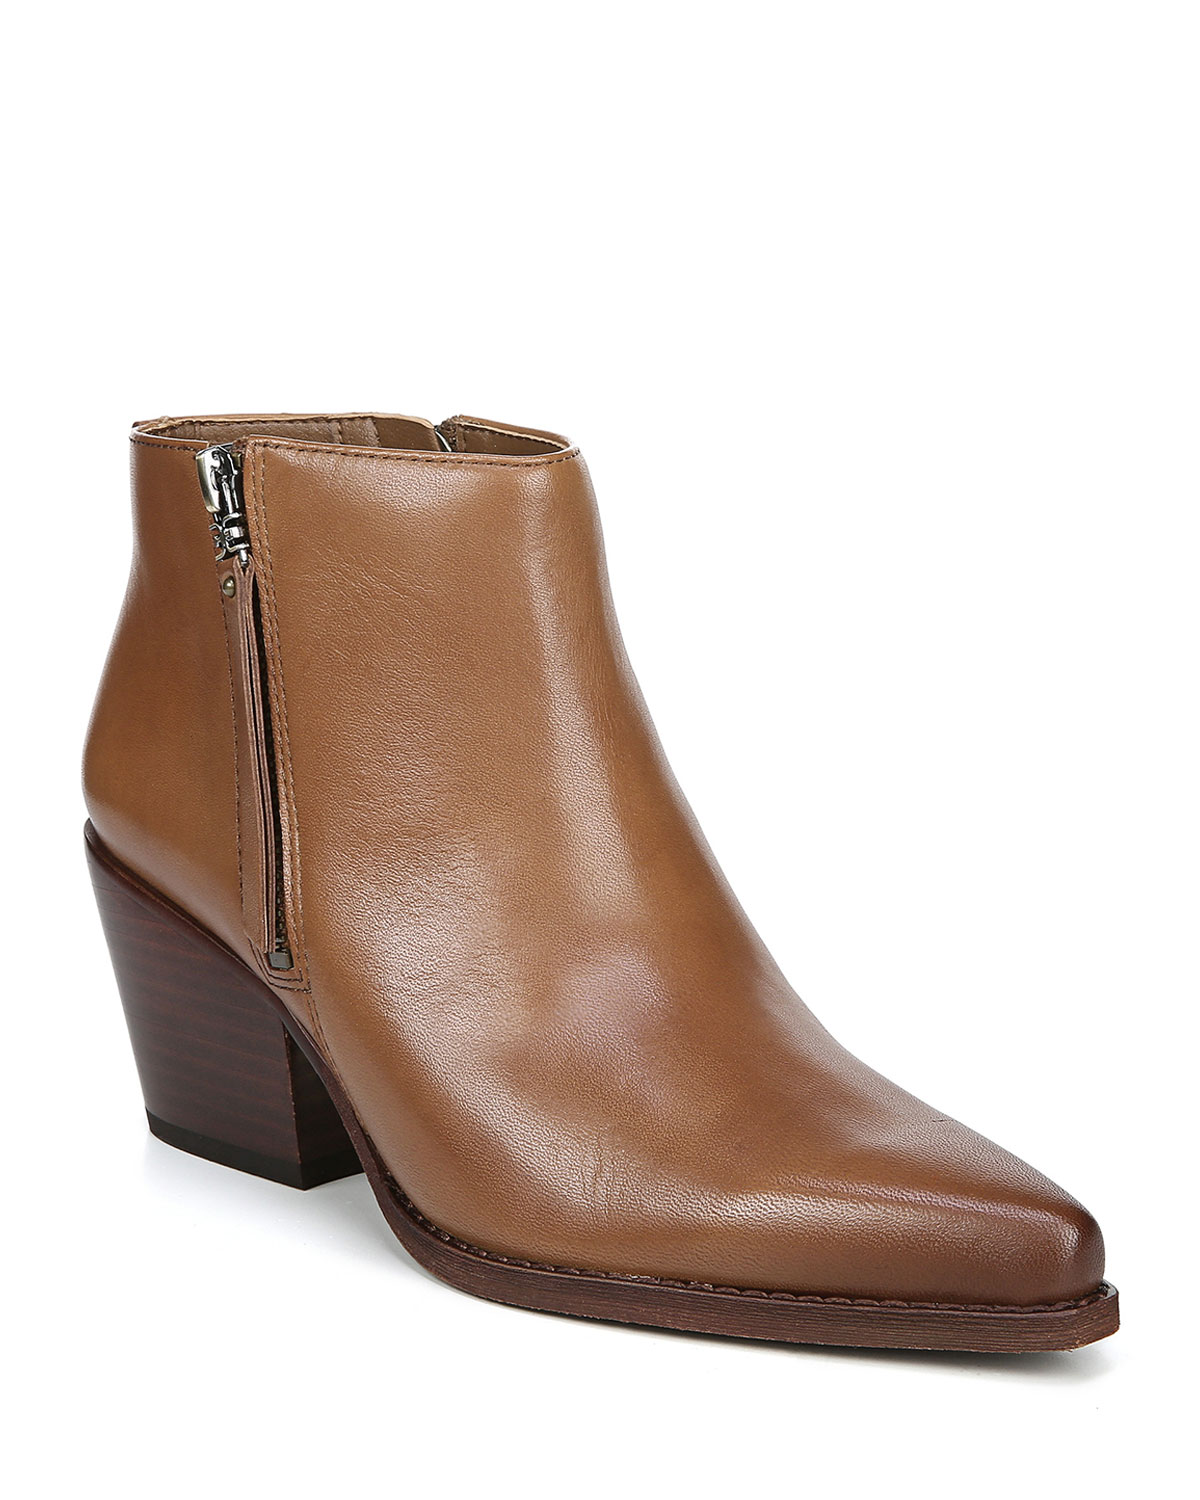 Walden Dual Zip Ankle Booties by Sam Edelman